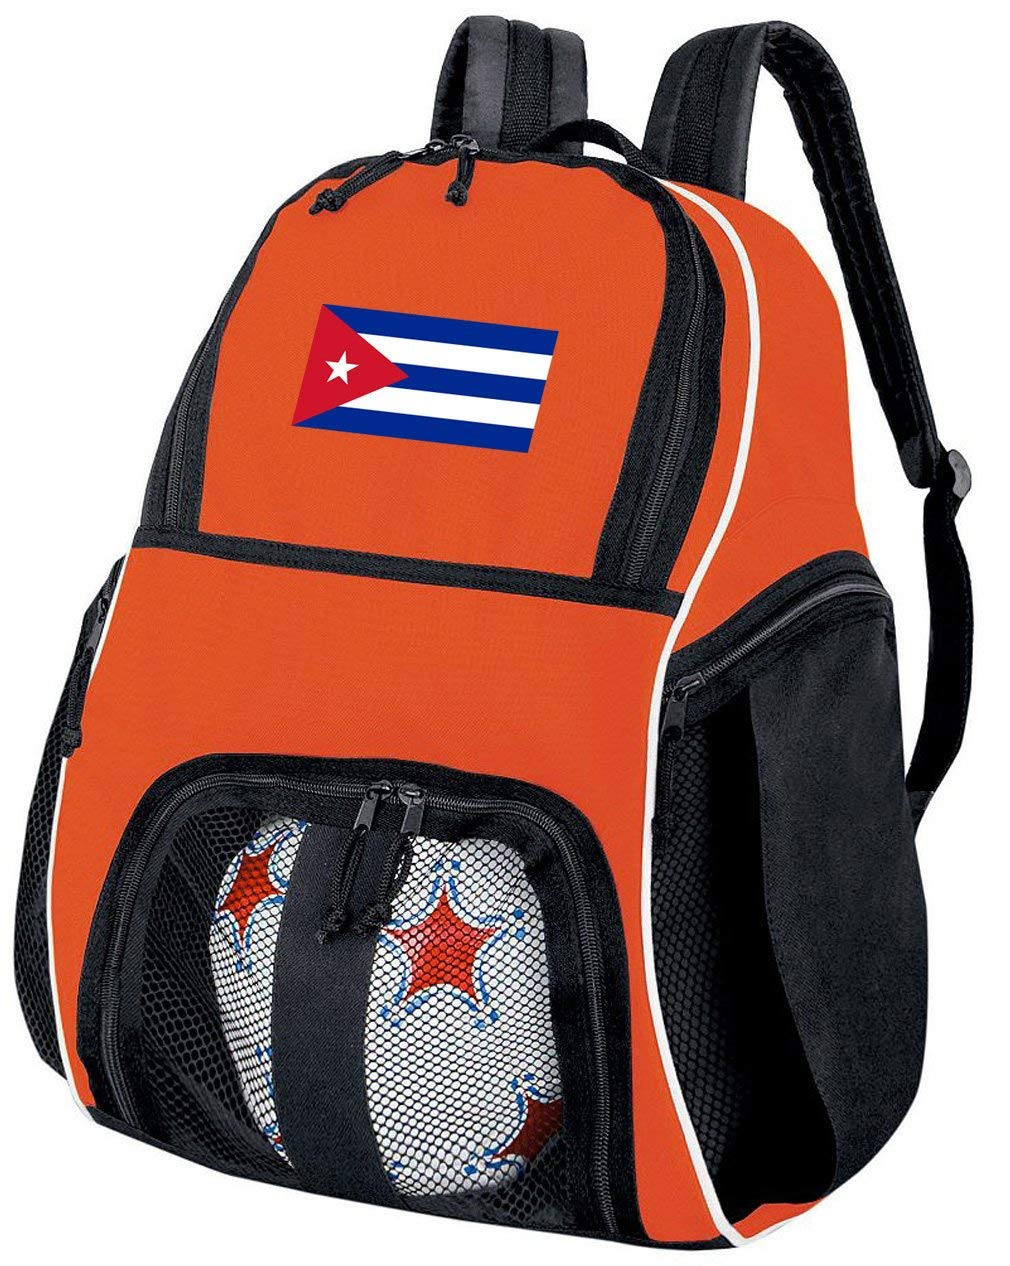 039e3d9c4ab4 Get Quotations · Broad Bay Cuba Soccer Ball Backpack or Volleyball Bag  Orange